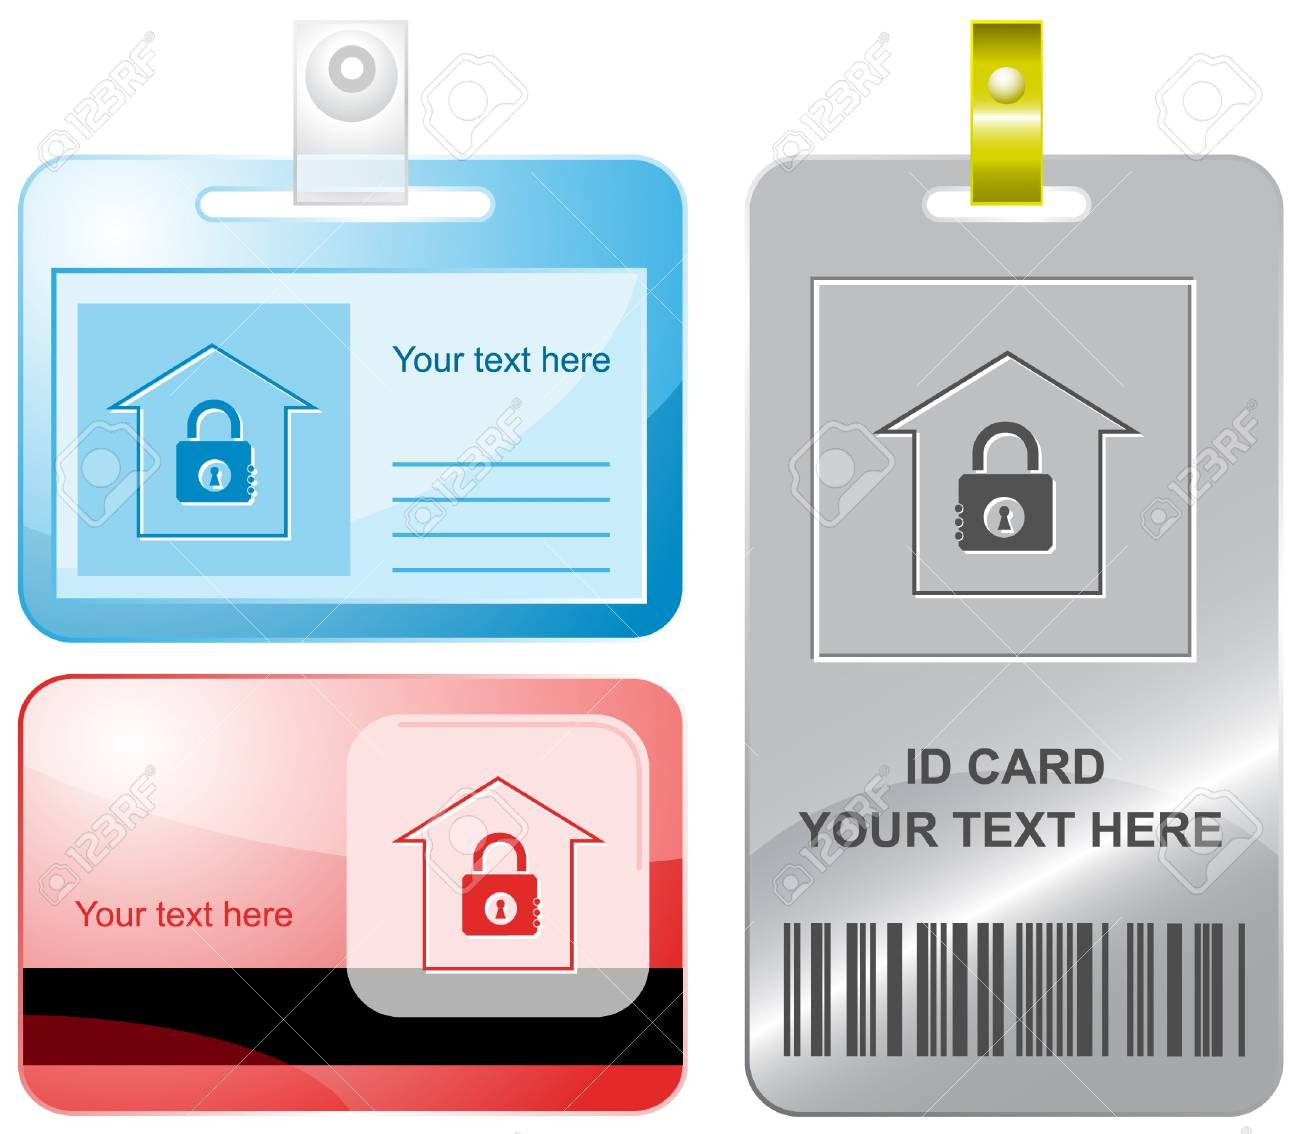 Bank. id cards. Stock Vector - 7176217